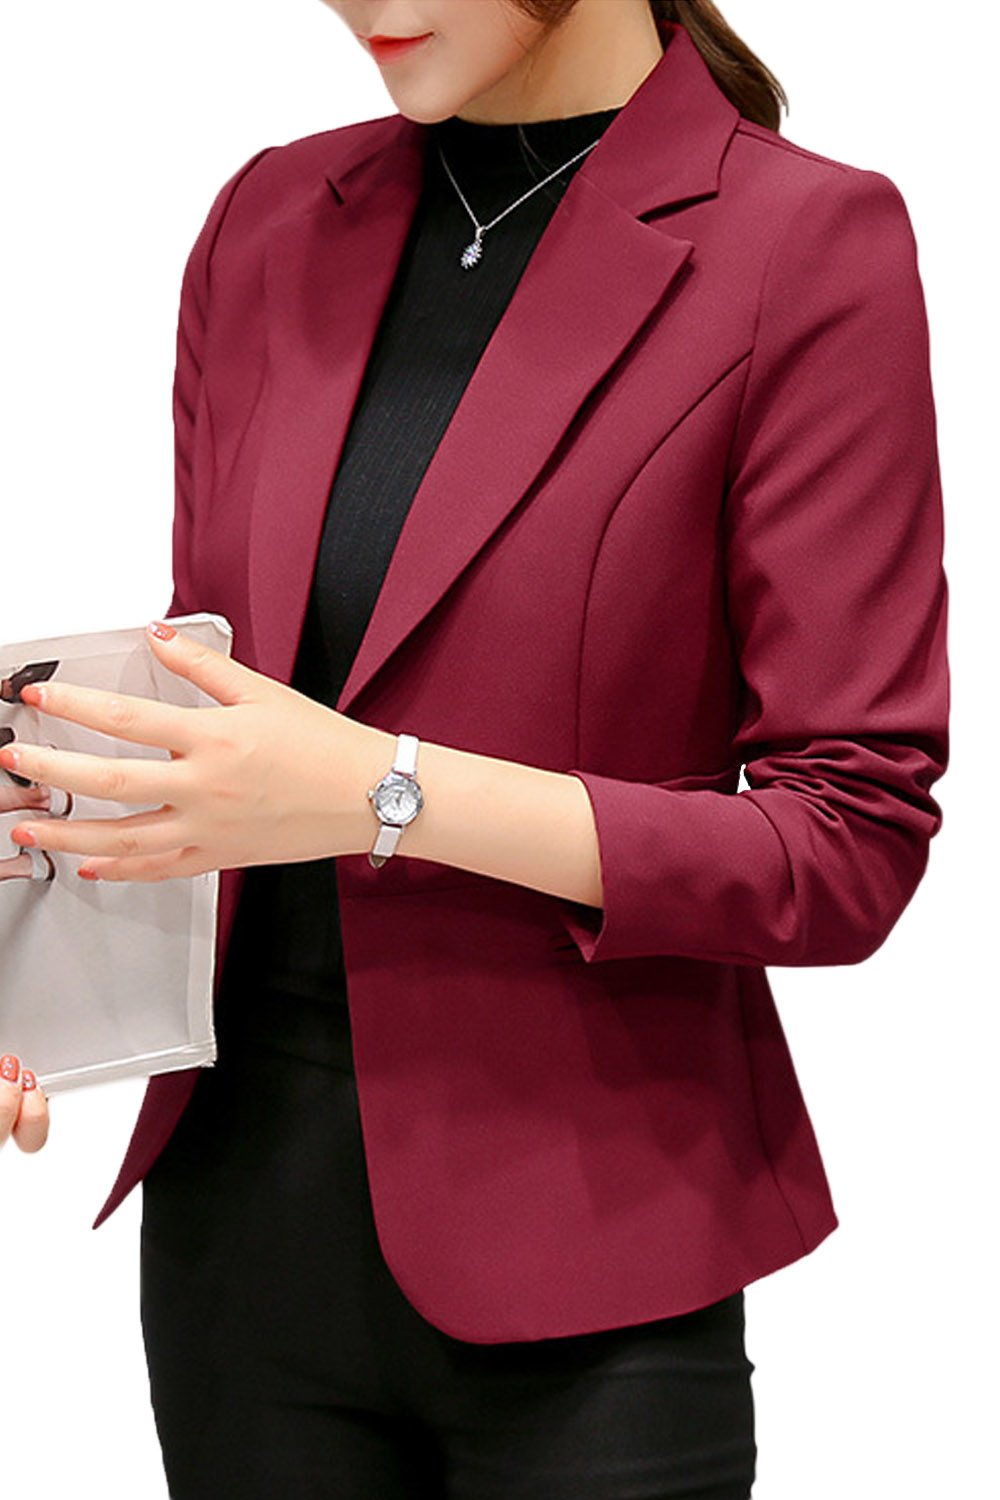 Suvotimo Women Elegant OL Business Suits Blazer Tops Jackets Outfit Winered S by Suvotimo